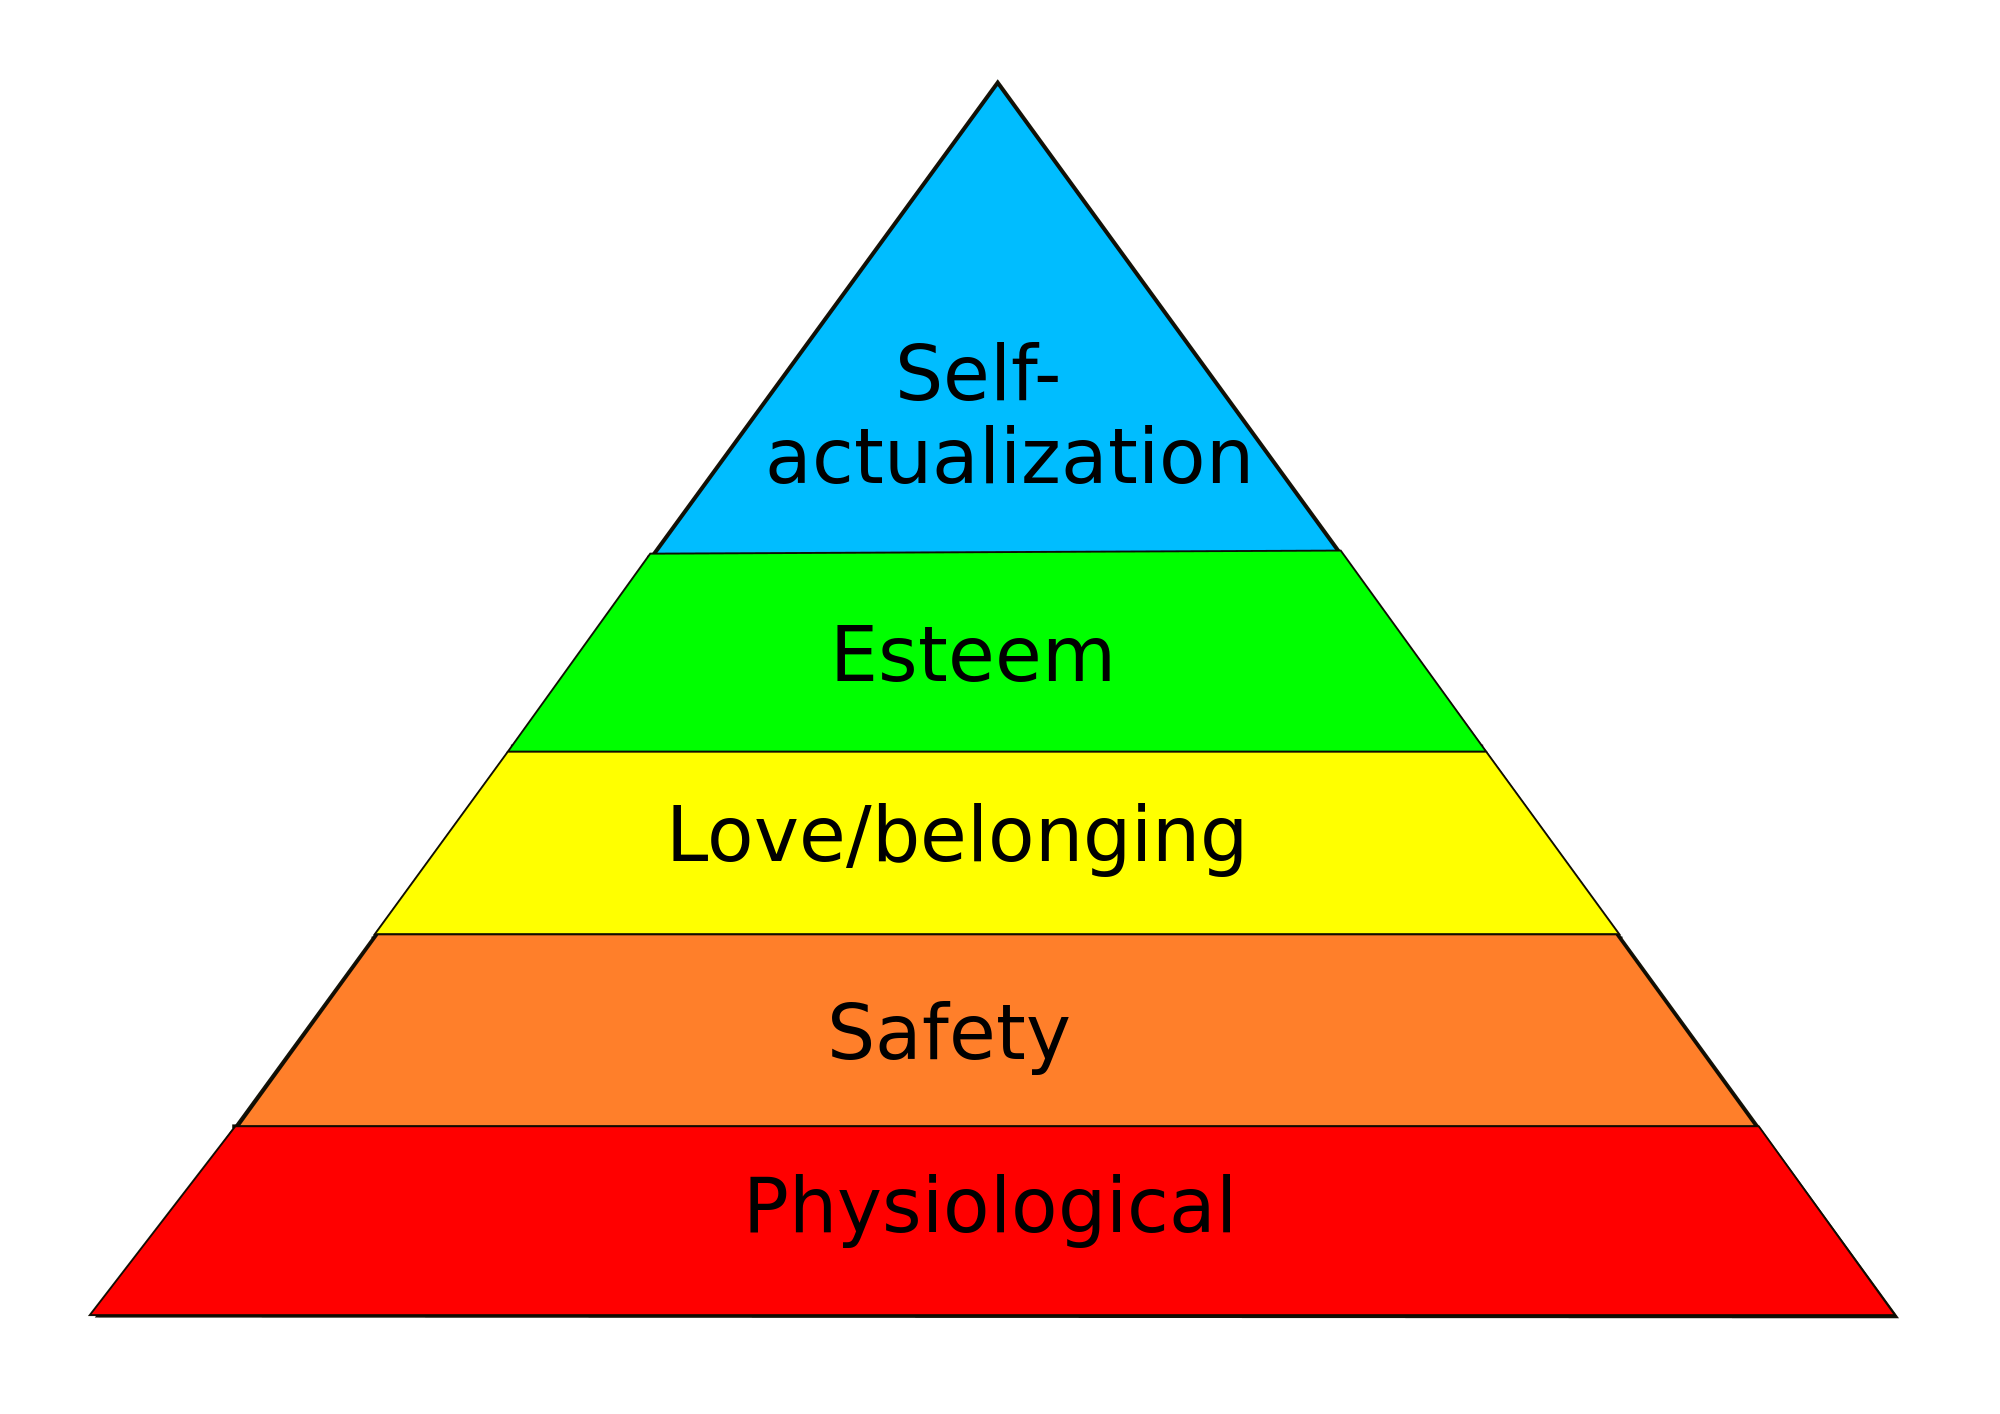 maslow self actualized essay Introduction to maslow's hierarchy of needs - ghost writing essays home essays introduction to maslow's aspects of self-actualization maslow said that.